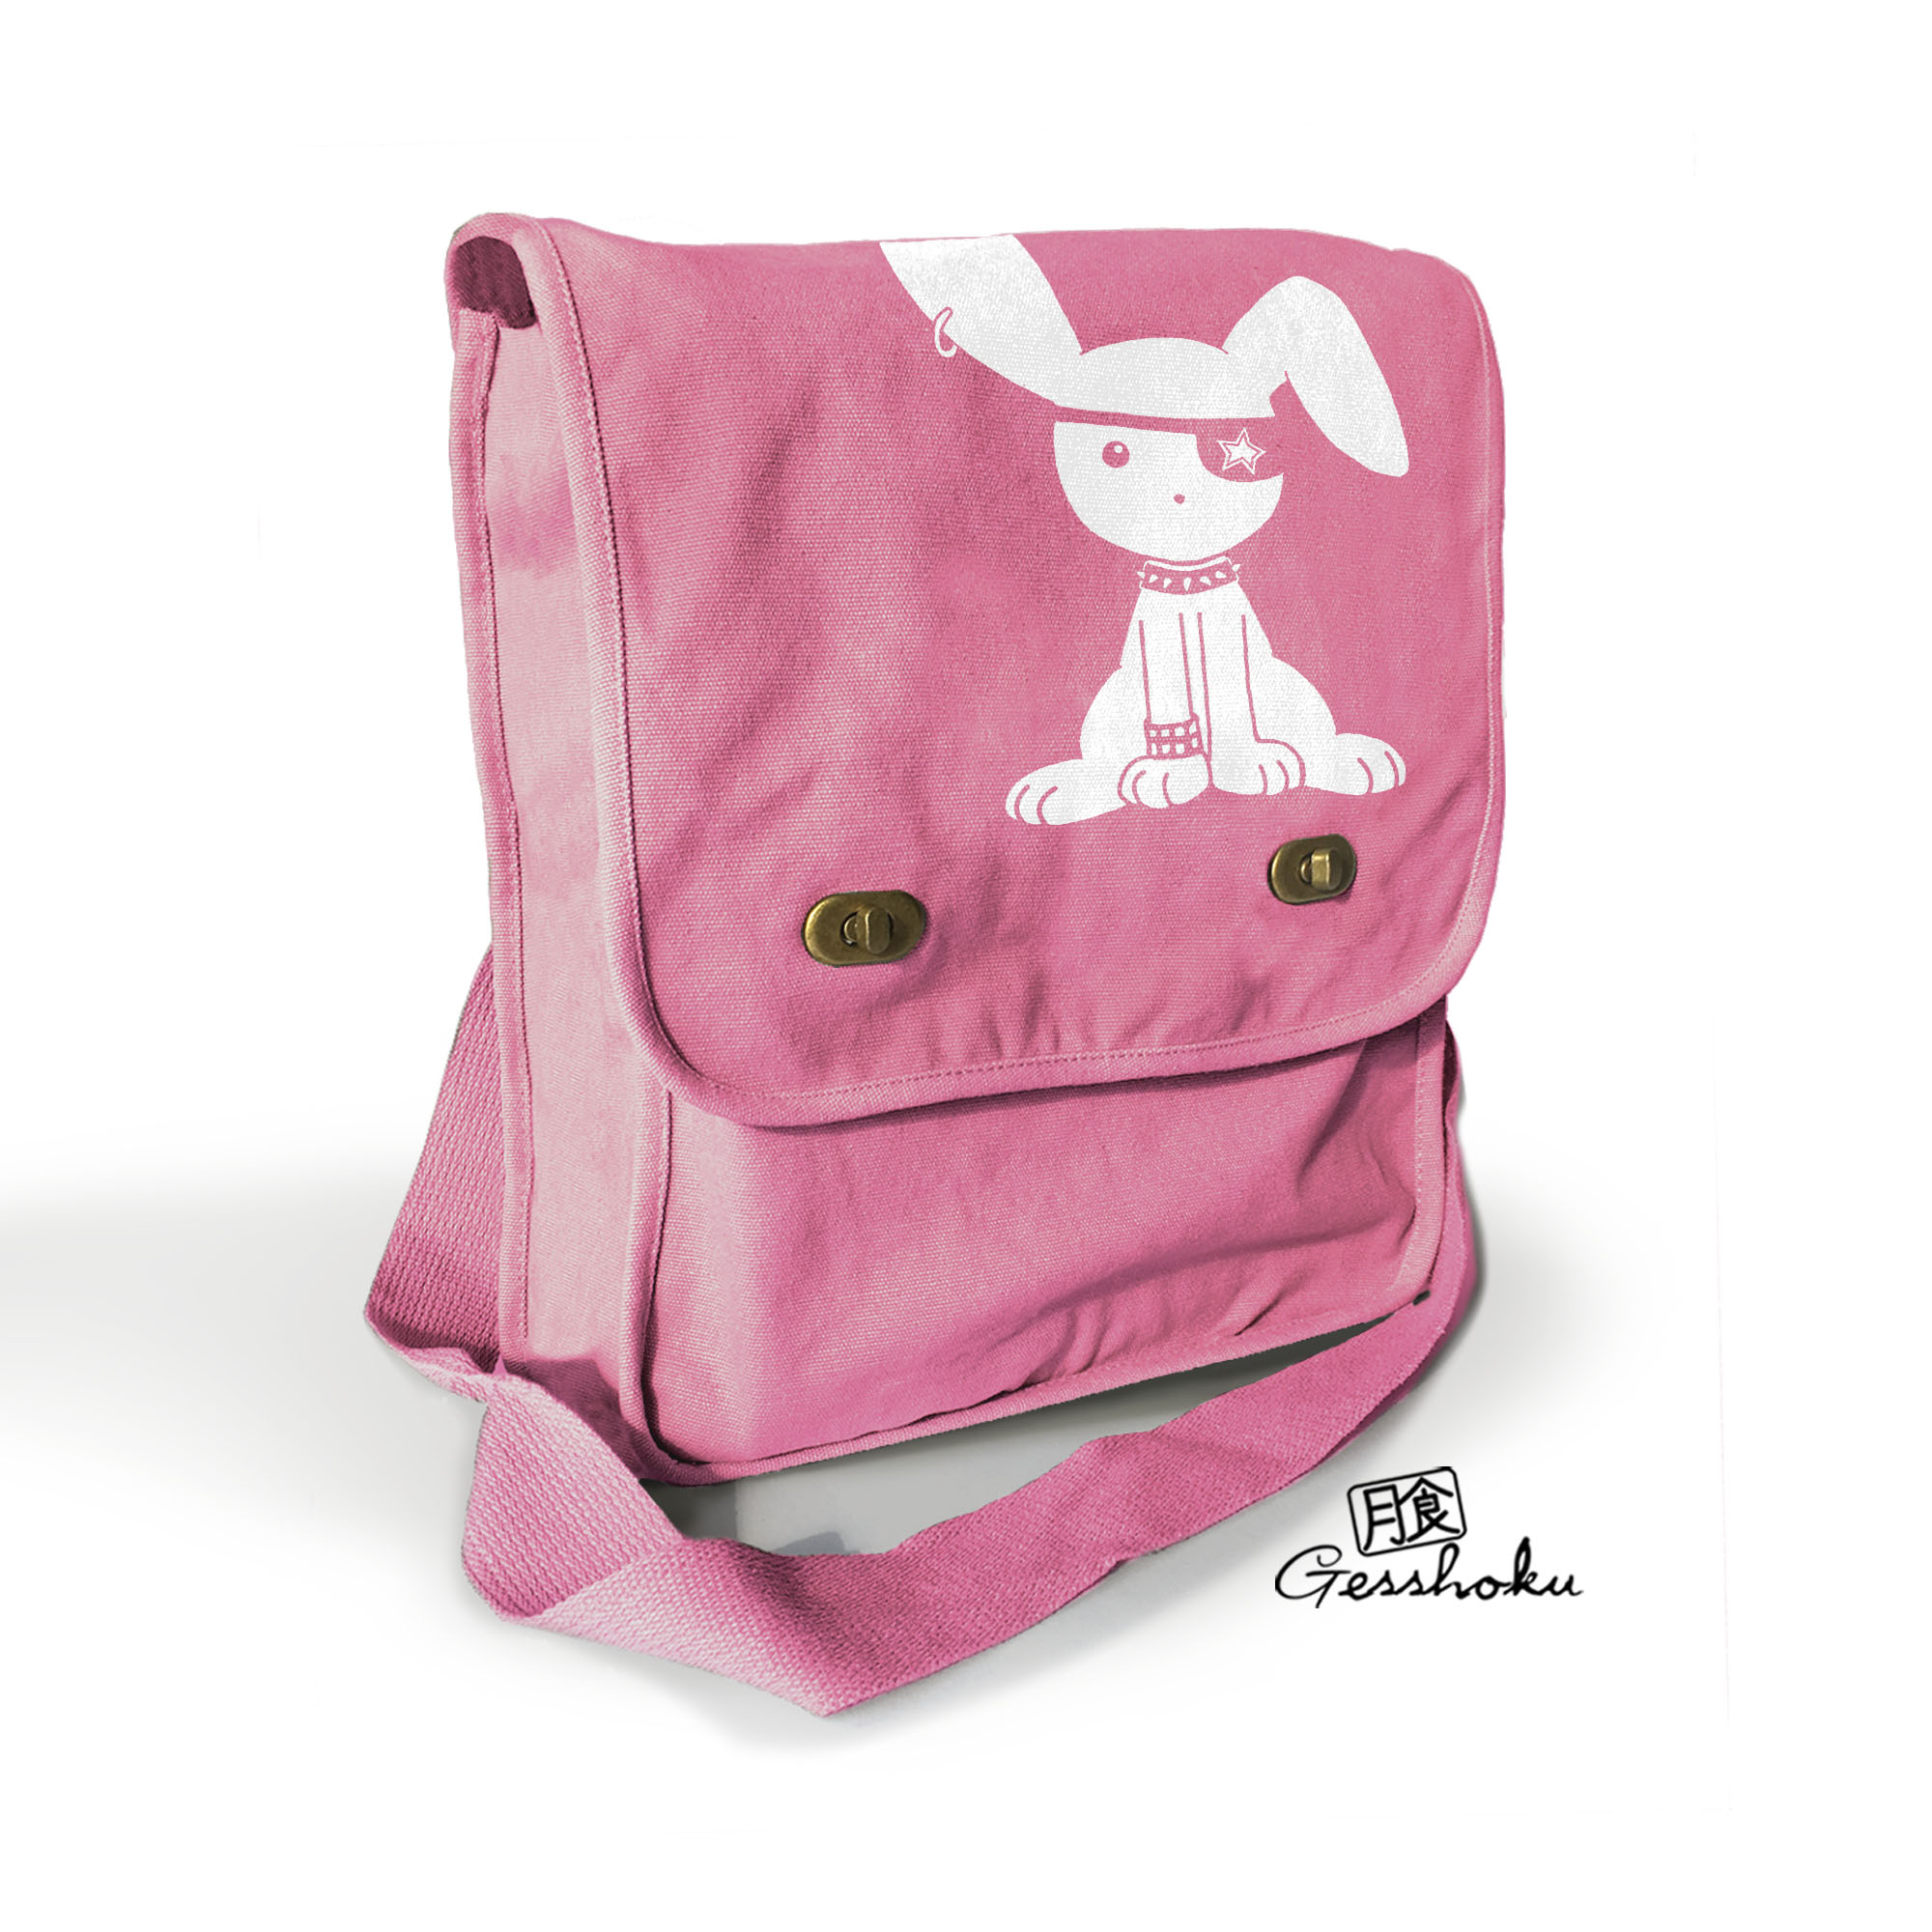 Gothic Jrock Bunny Field Bag - Pink